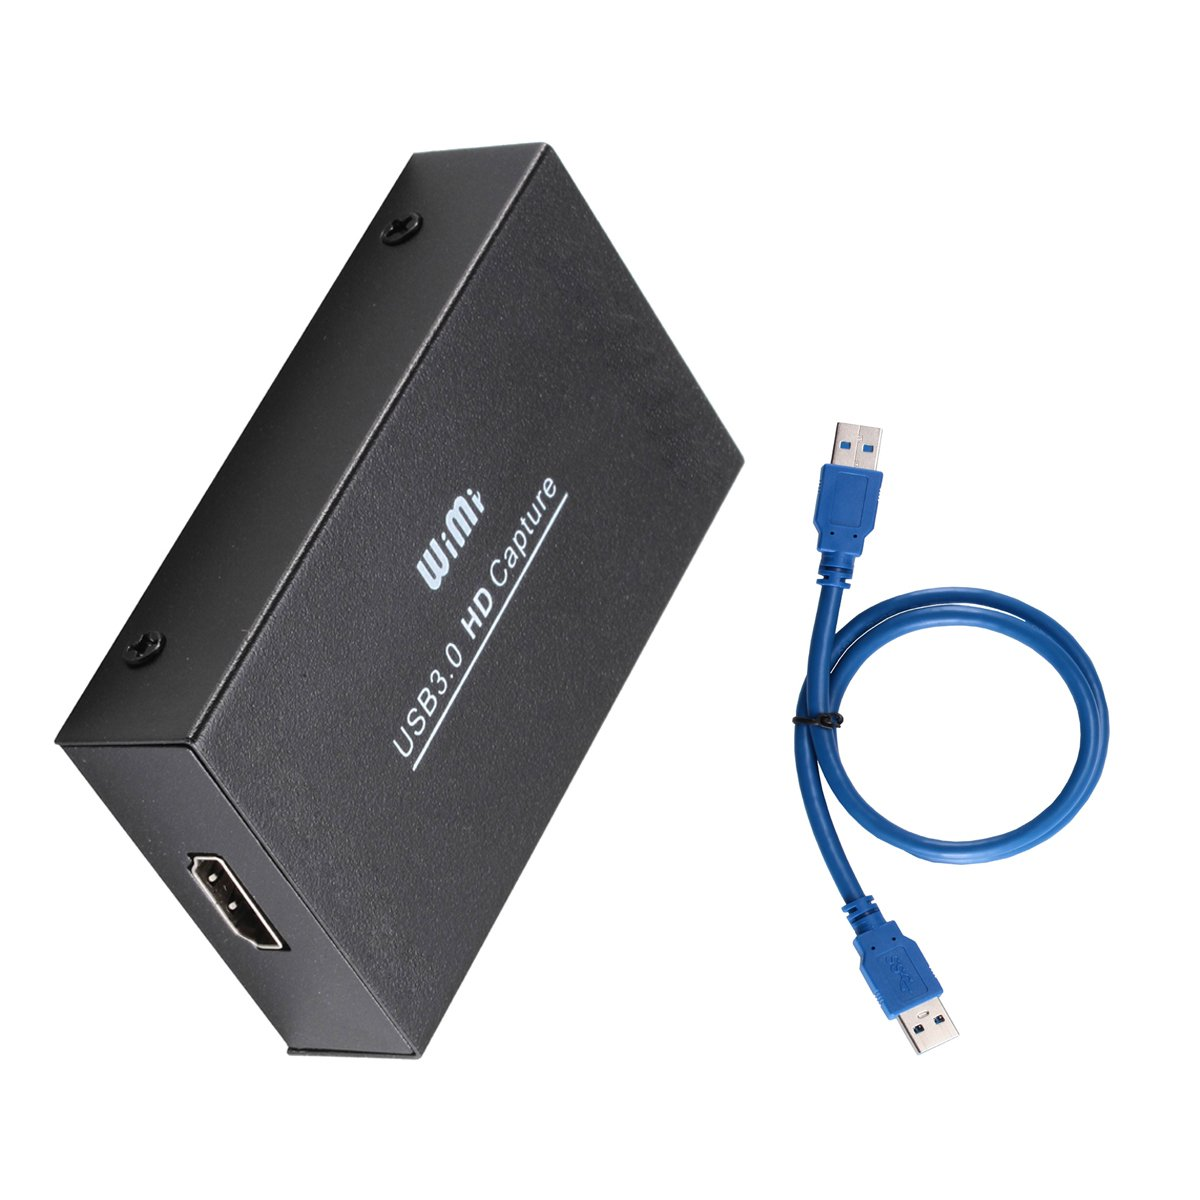 Sourcingbay HDMI USB3 0 Video Game Capture Full HD 1080P Video Audio HDMI  to USB Converter, No-Driver, Support OBS/Protplayer and Windows Linux Os X